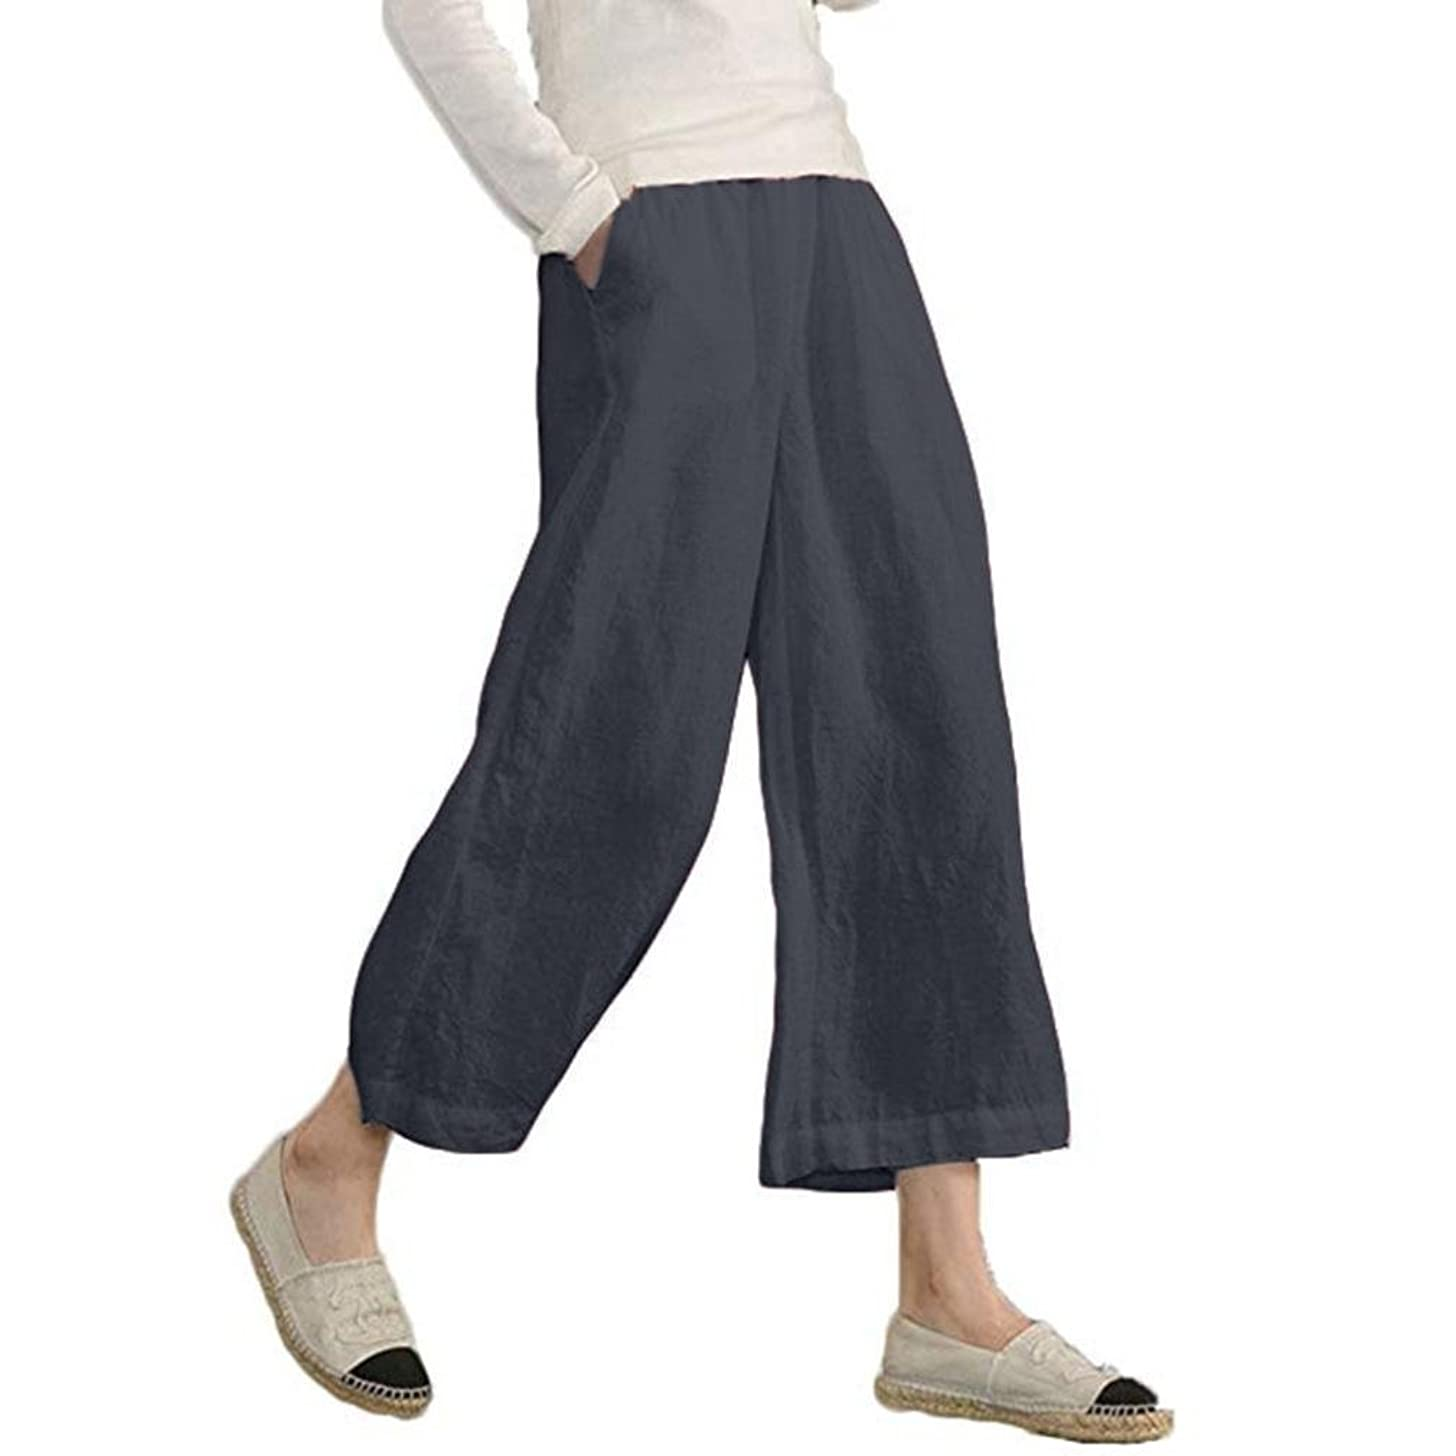 Pervobs Women Pants, Women's Causal Loose Elastic Waist Cropped Wide Leg Ankle-Length Pants Trousers